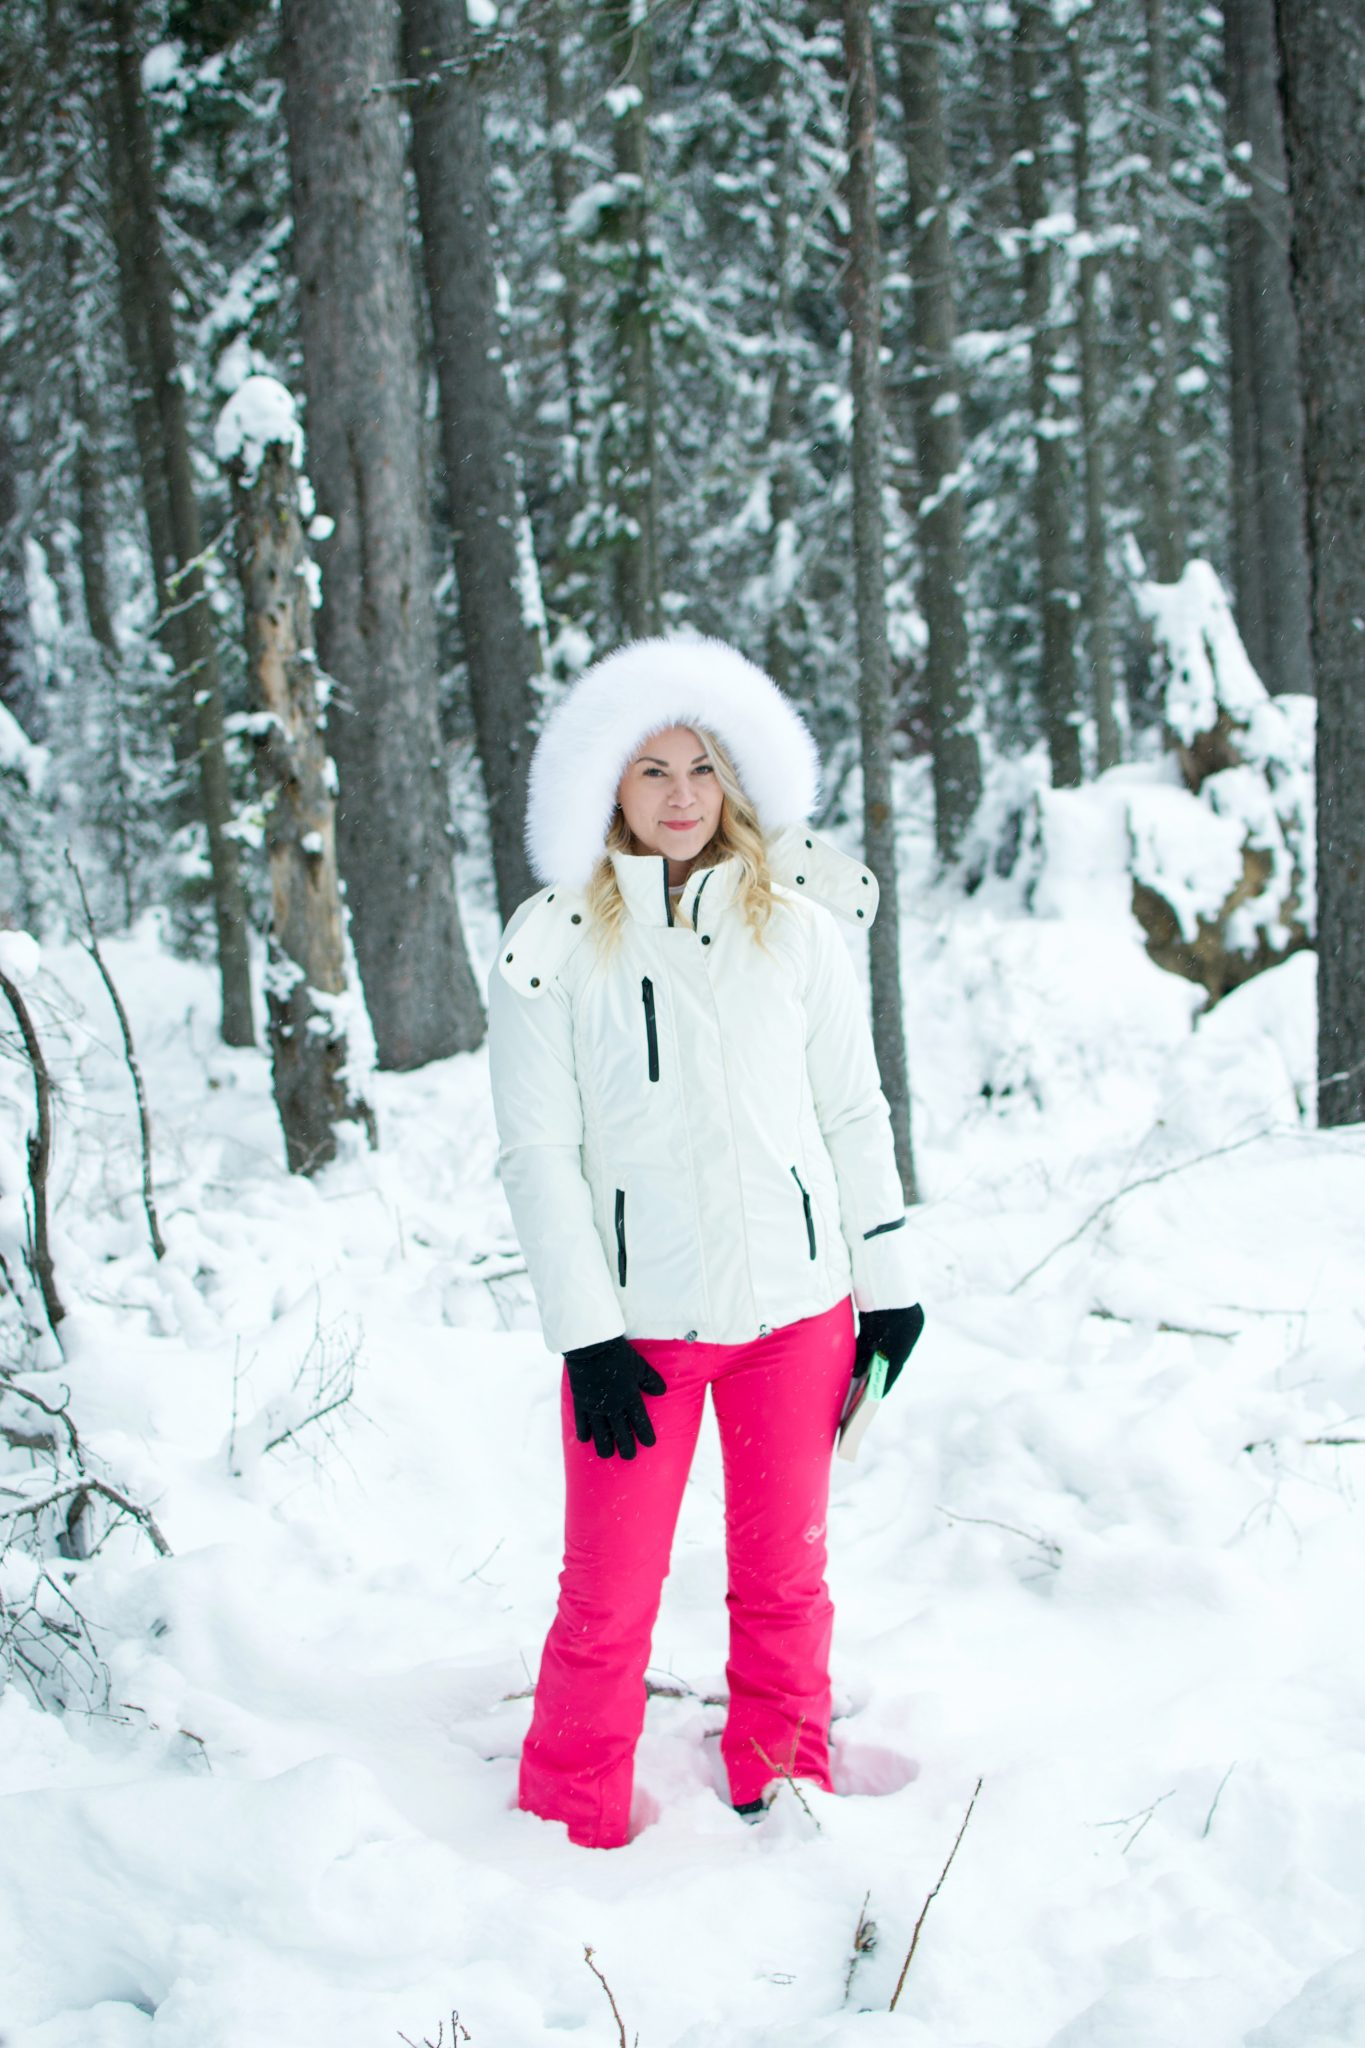 Snow Style: Outfits for the Snow